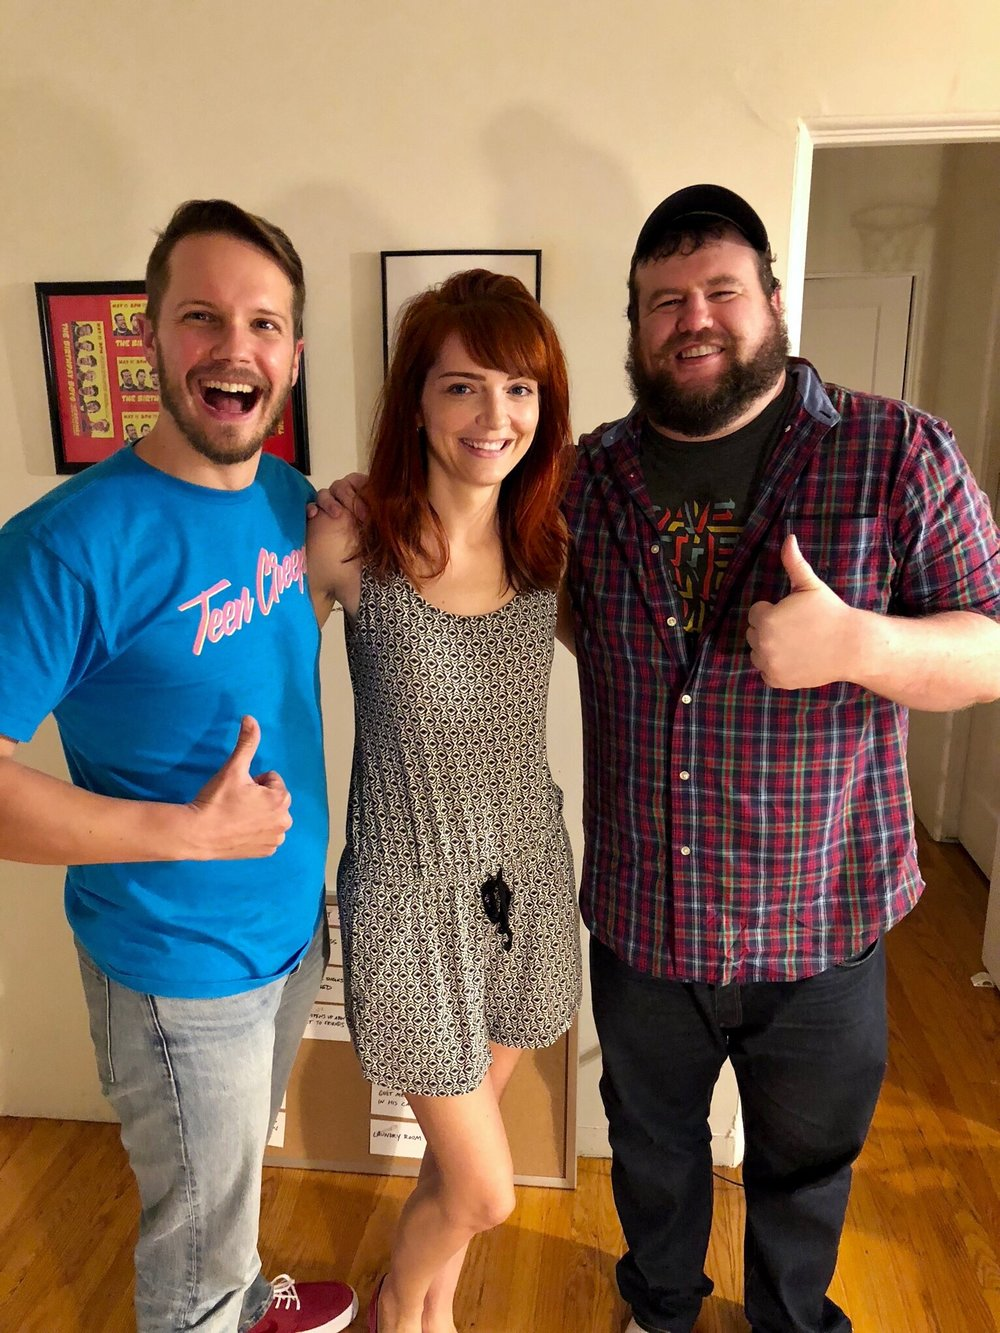 Jackie Johnson with Mitch and Nick of the Doughboys podcast.